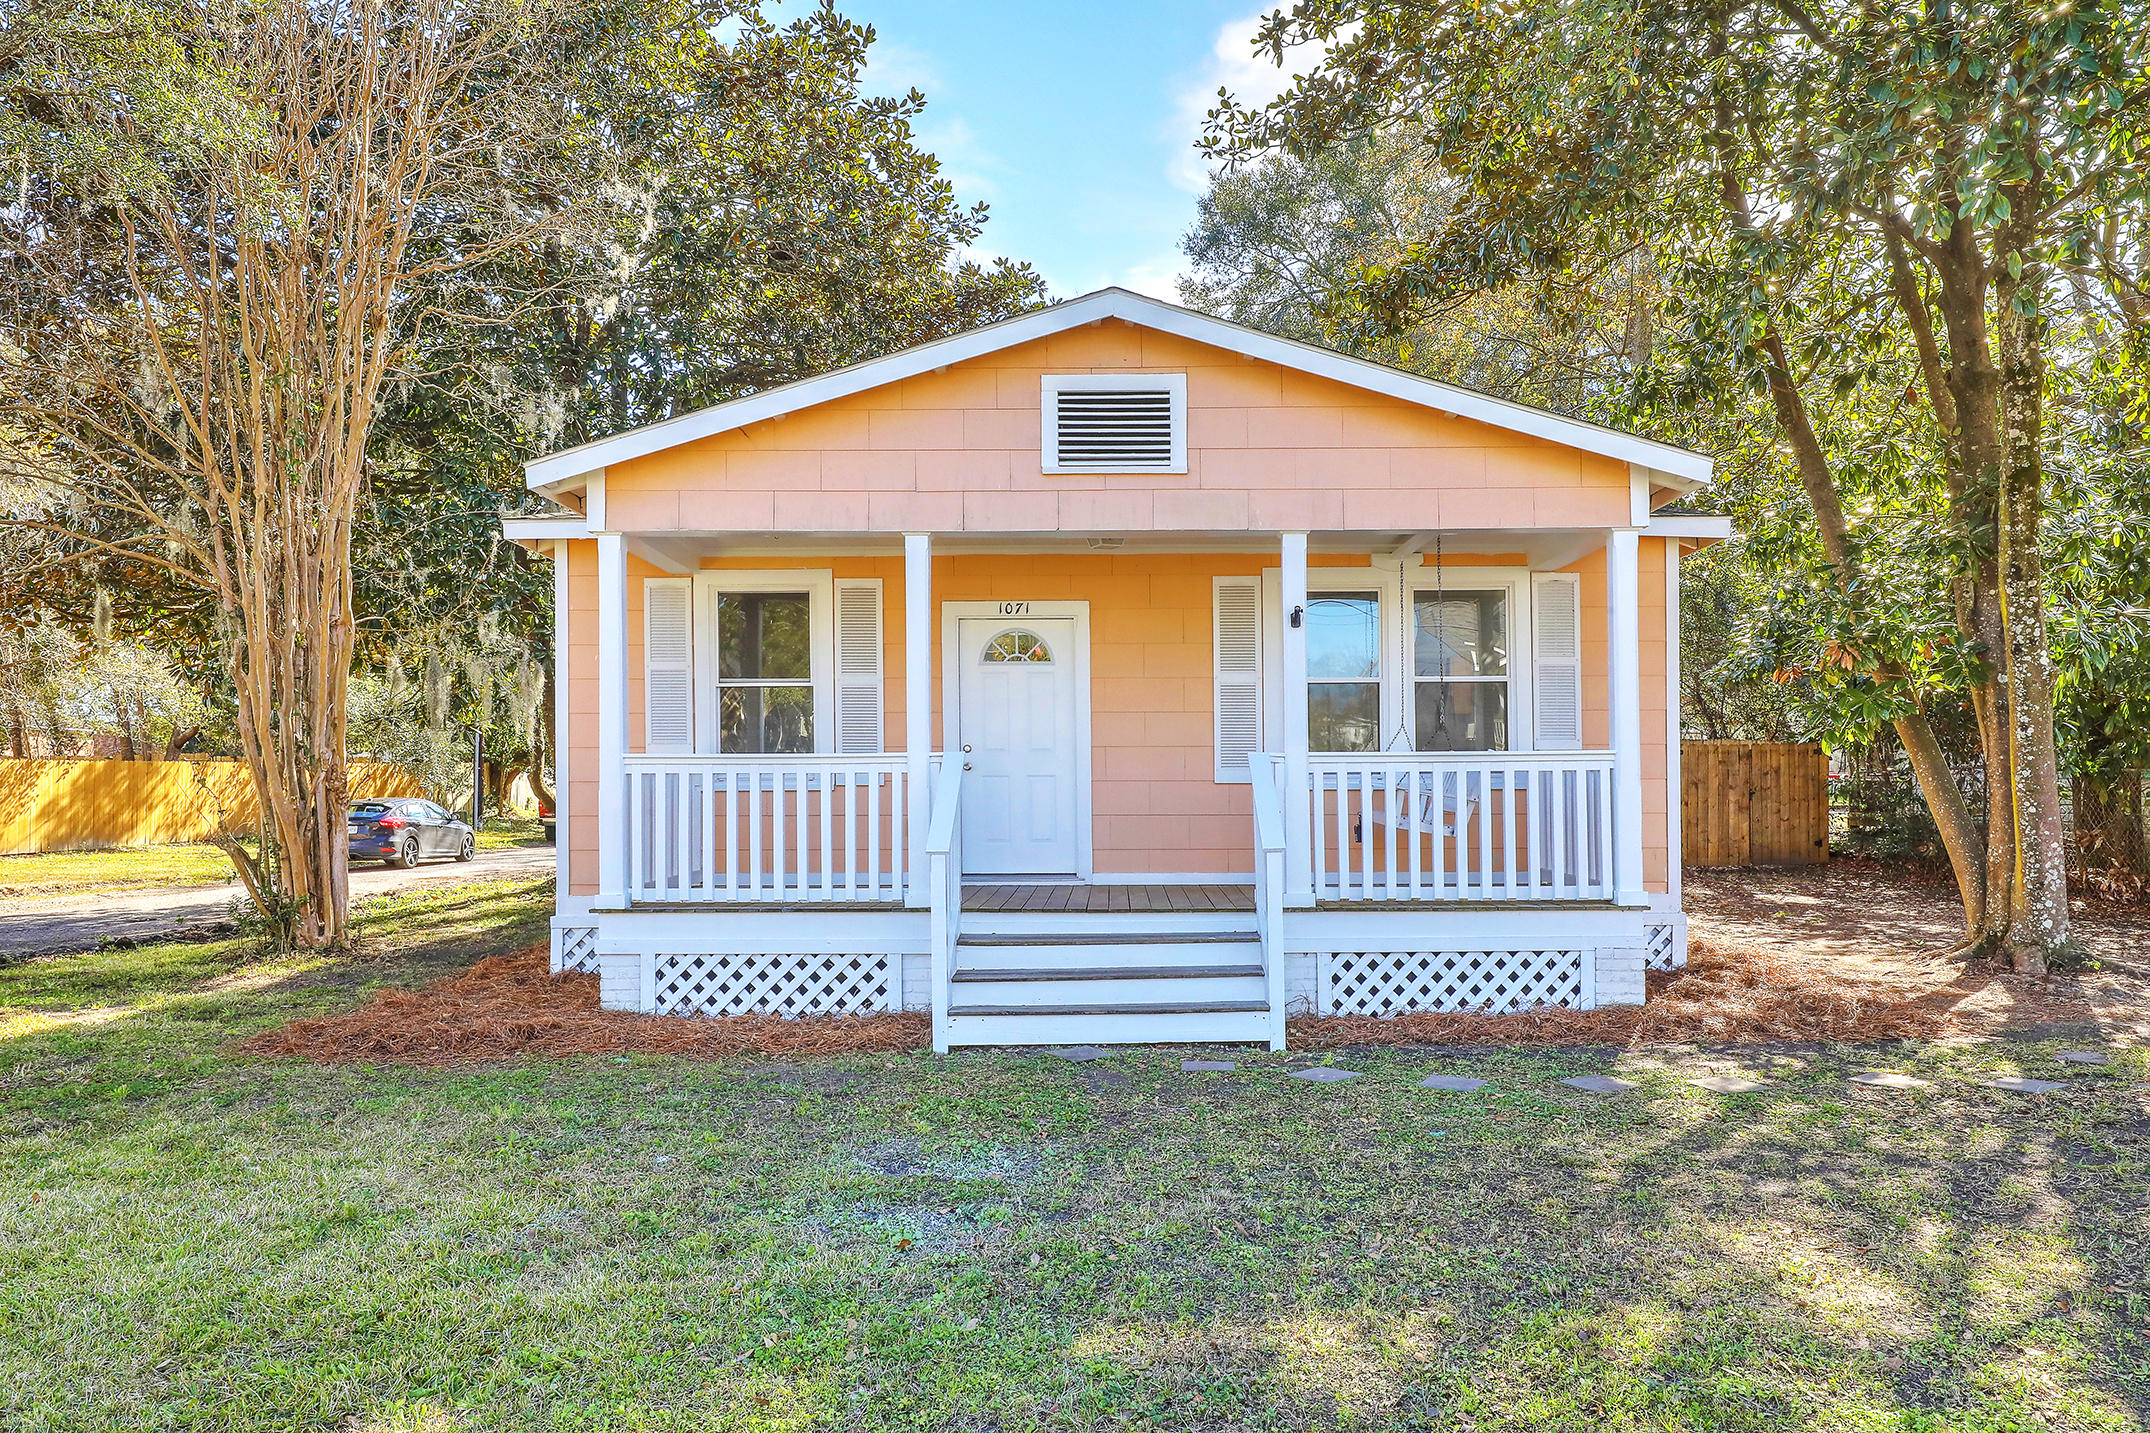 1071 Glenshaw Street North Charleston, SC 29405